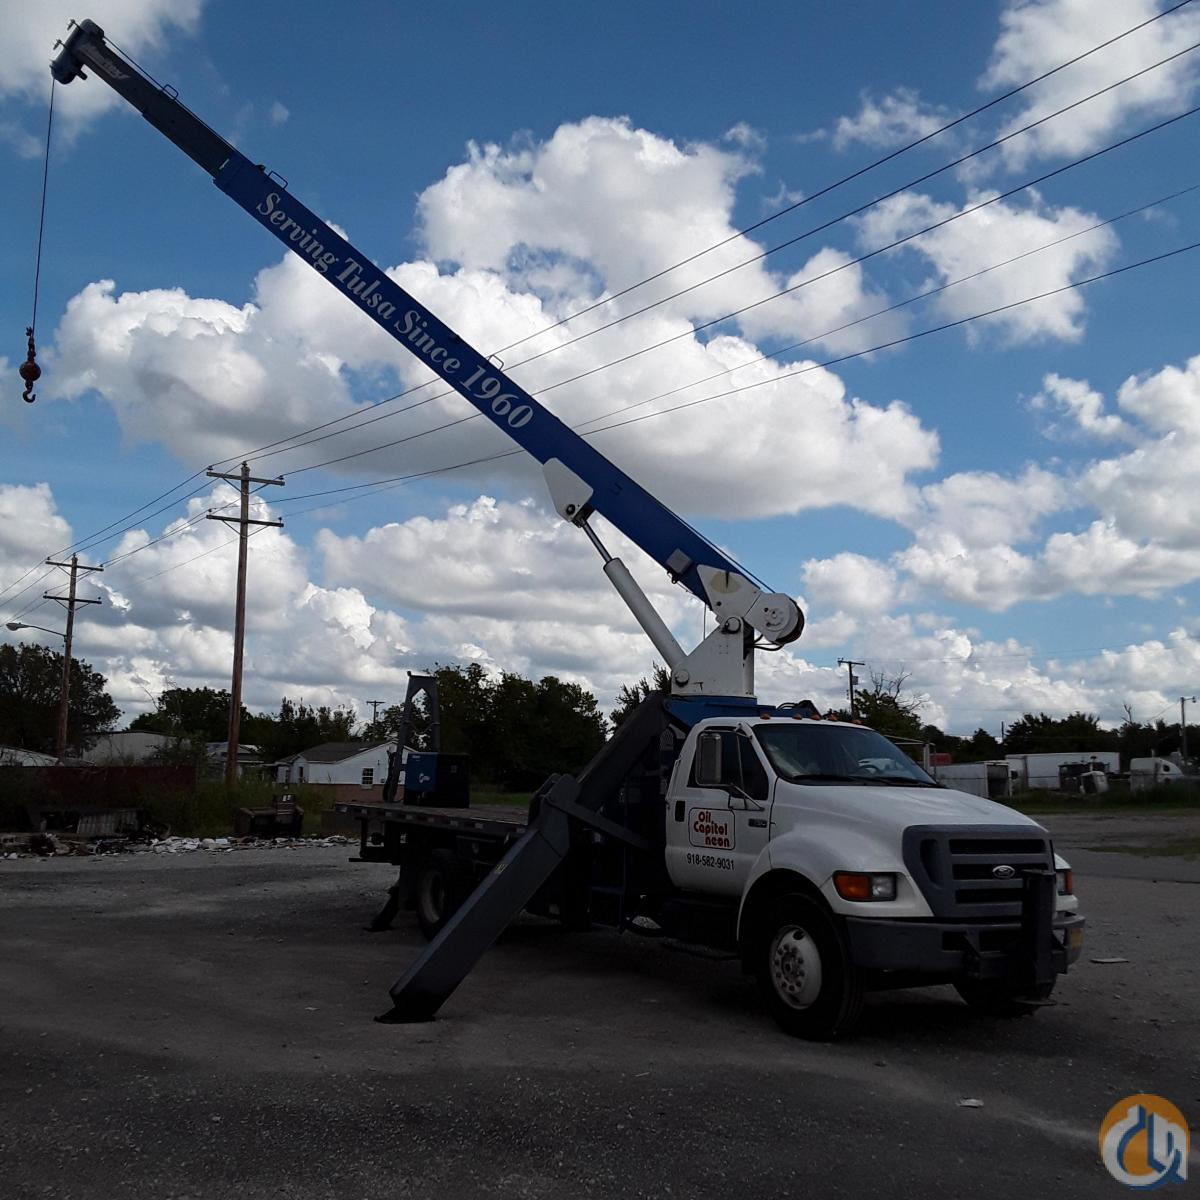 2004 FORD F750 MANITEX 1770C CRANE Crane for Sale in Tulsa Oklahoma on CraneNetwork.com